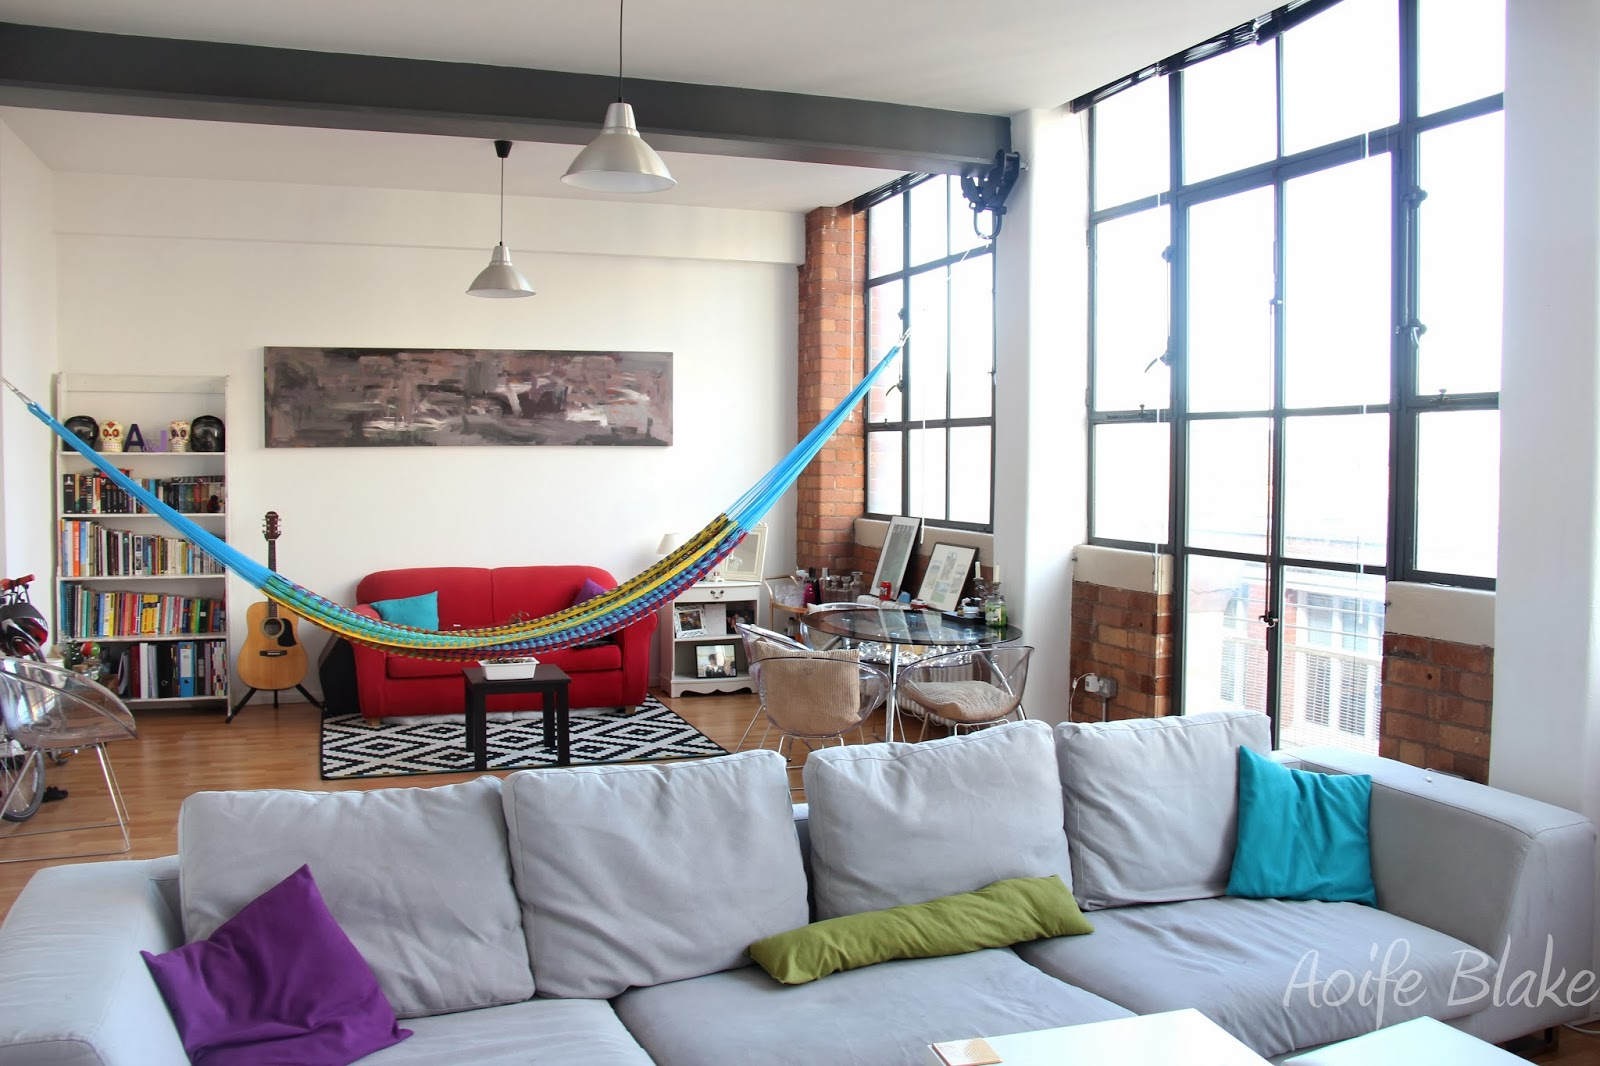 14 Awesome Indoor Hammock Ideas For A Lazy Sunday Morning Ceplukan